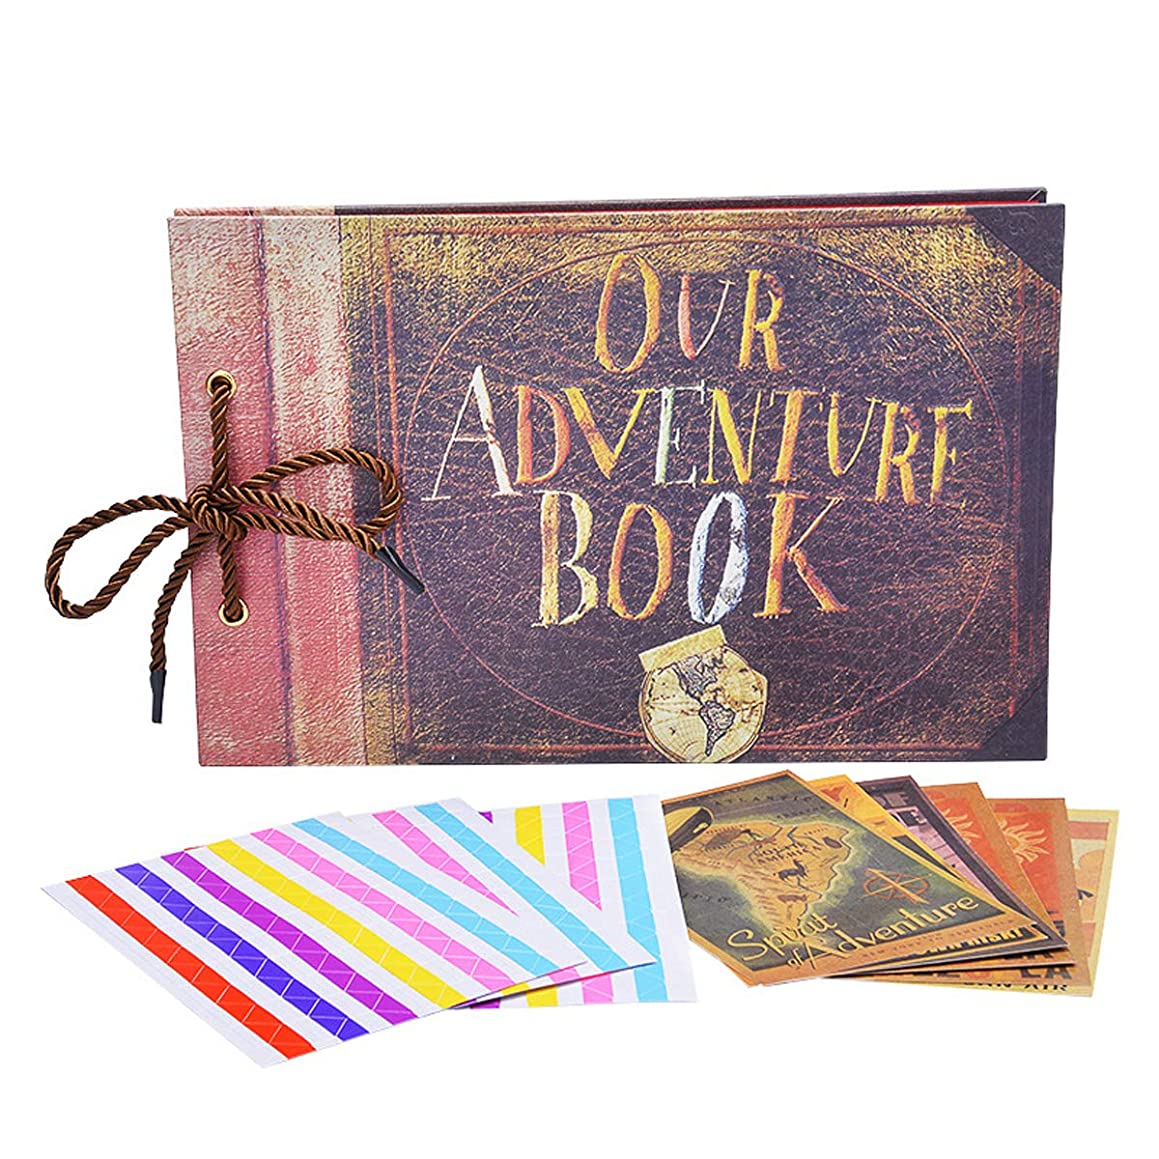 TECHSON DIY Photo Album, Our Adventure Book Scrapbook, Vintage Retro Memory Wedding Anniversary Album (Includes 5 x Postcards and 5 x Photo Corners)